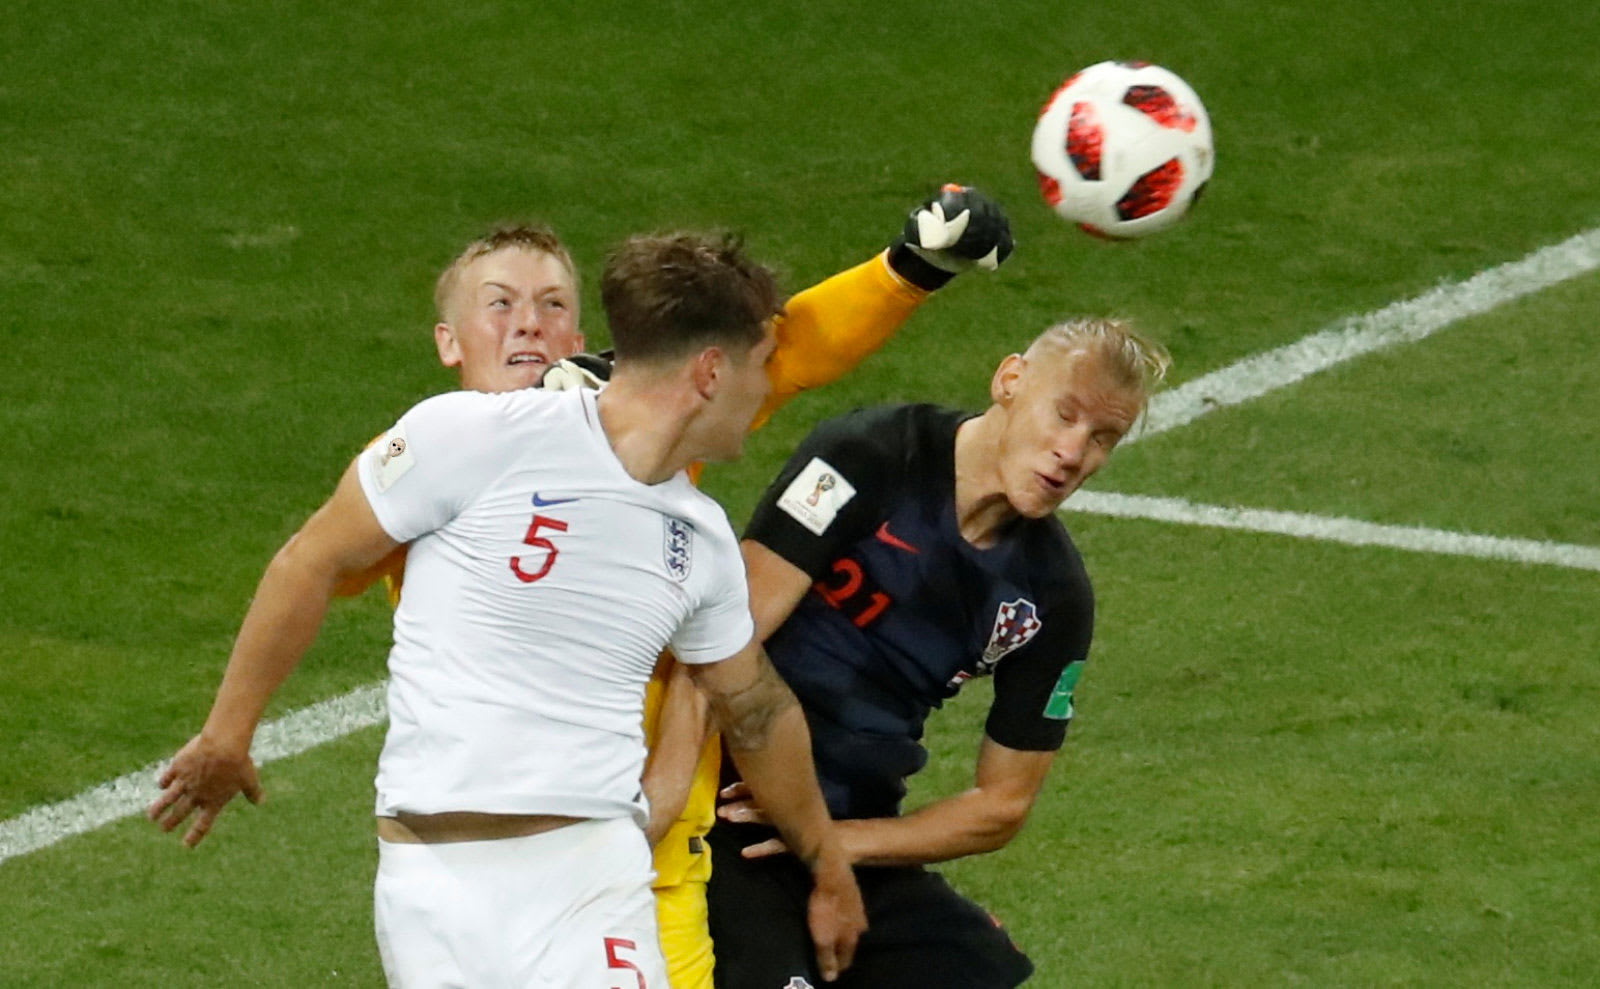 a78ad493b Christian Hartmann   Reuters. In the middle of Wednesday s World Cup  semifinal match between England and Croatia